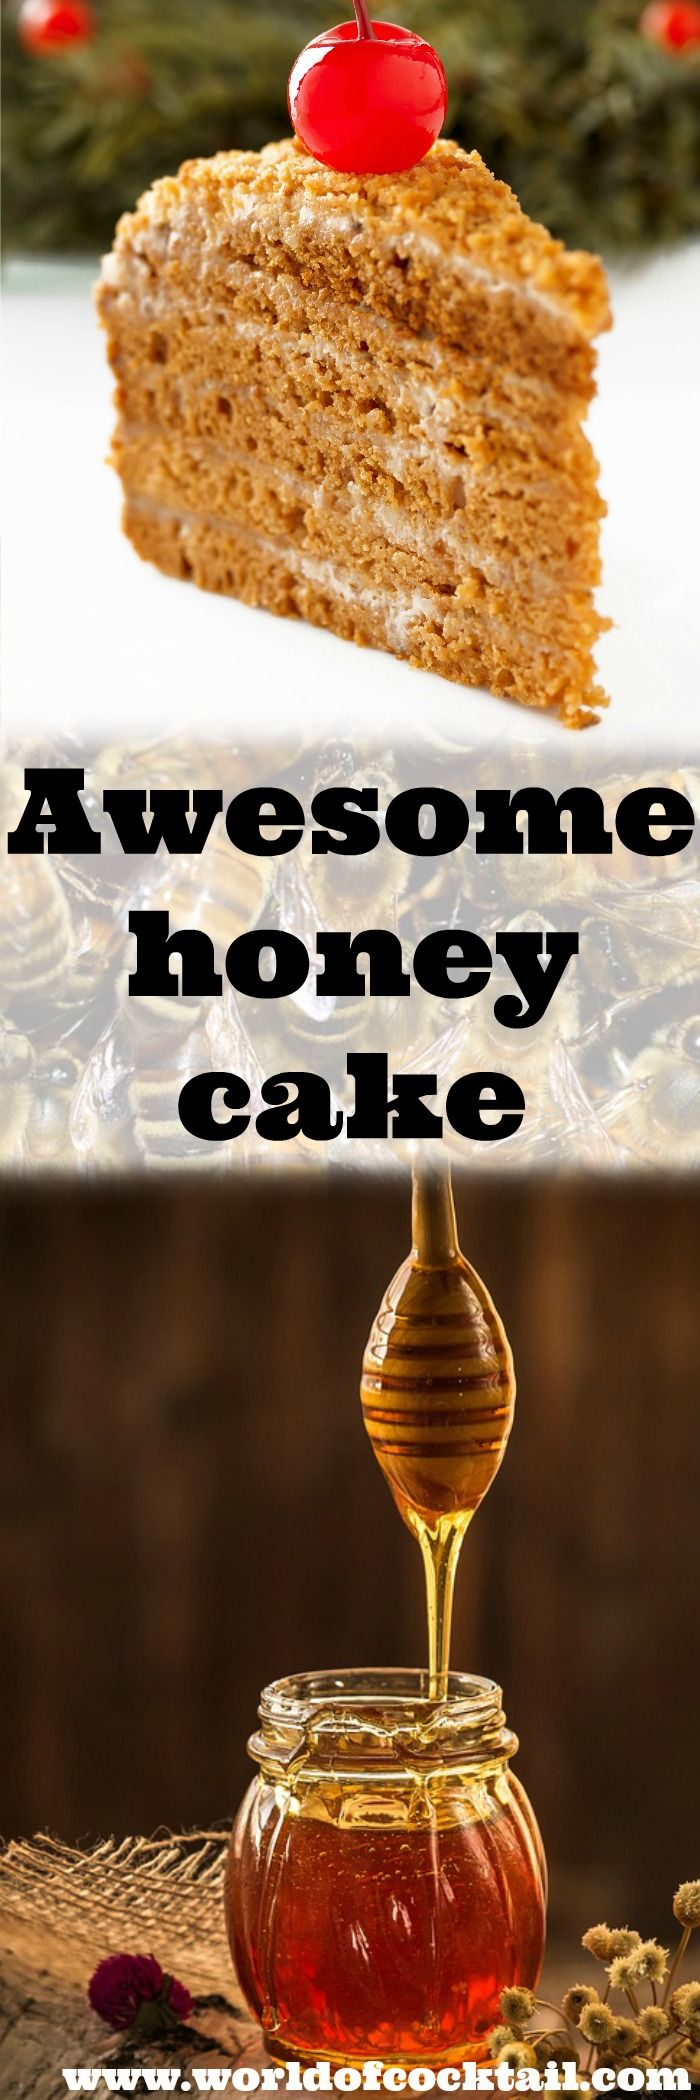 Take home one of the most popular cakes in the world… Recipe: 250 g butter for baking 3 eggs 3 tablespoons dark honey 300 g sugar grit 400 g plain flour 1 teaspoon baking soda 1 handful of walnuts for garnish THE CREAM 1 tin of caramel Salka (milk caramel) 300 g butter …